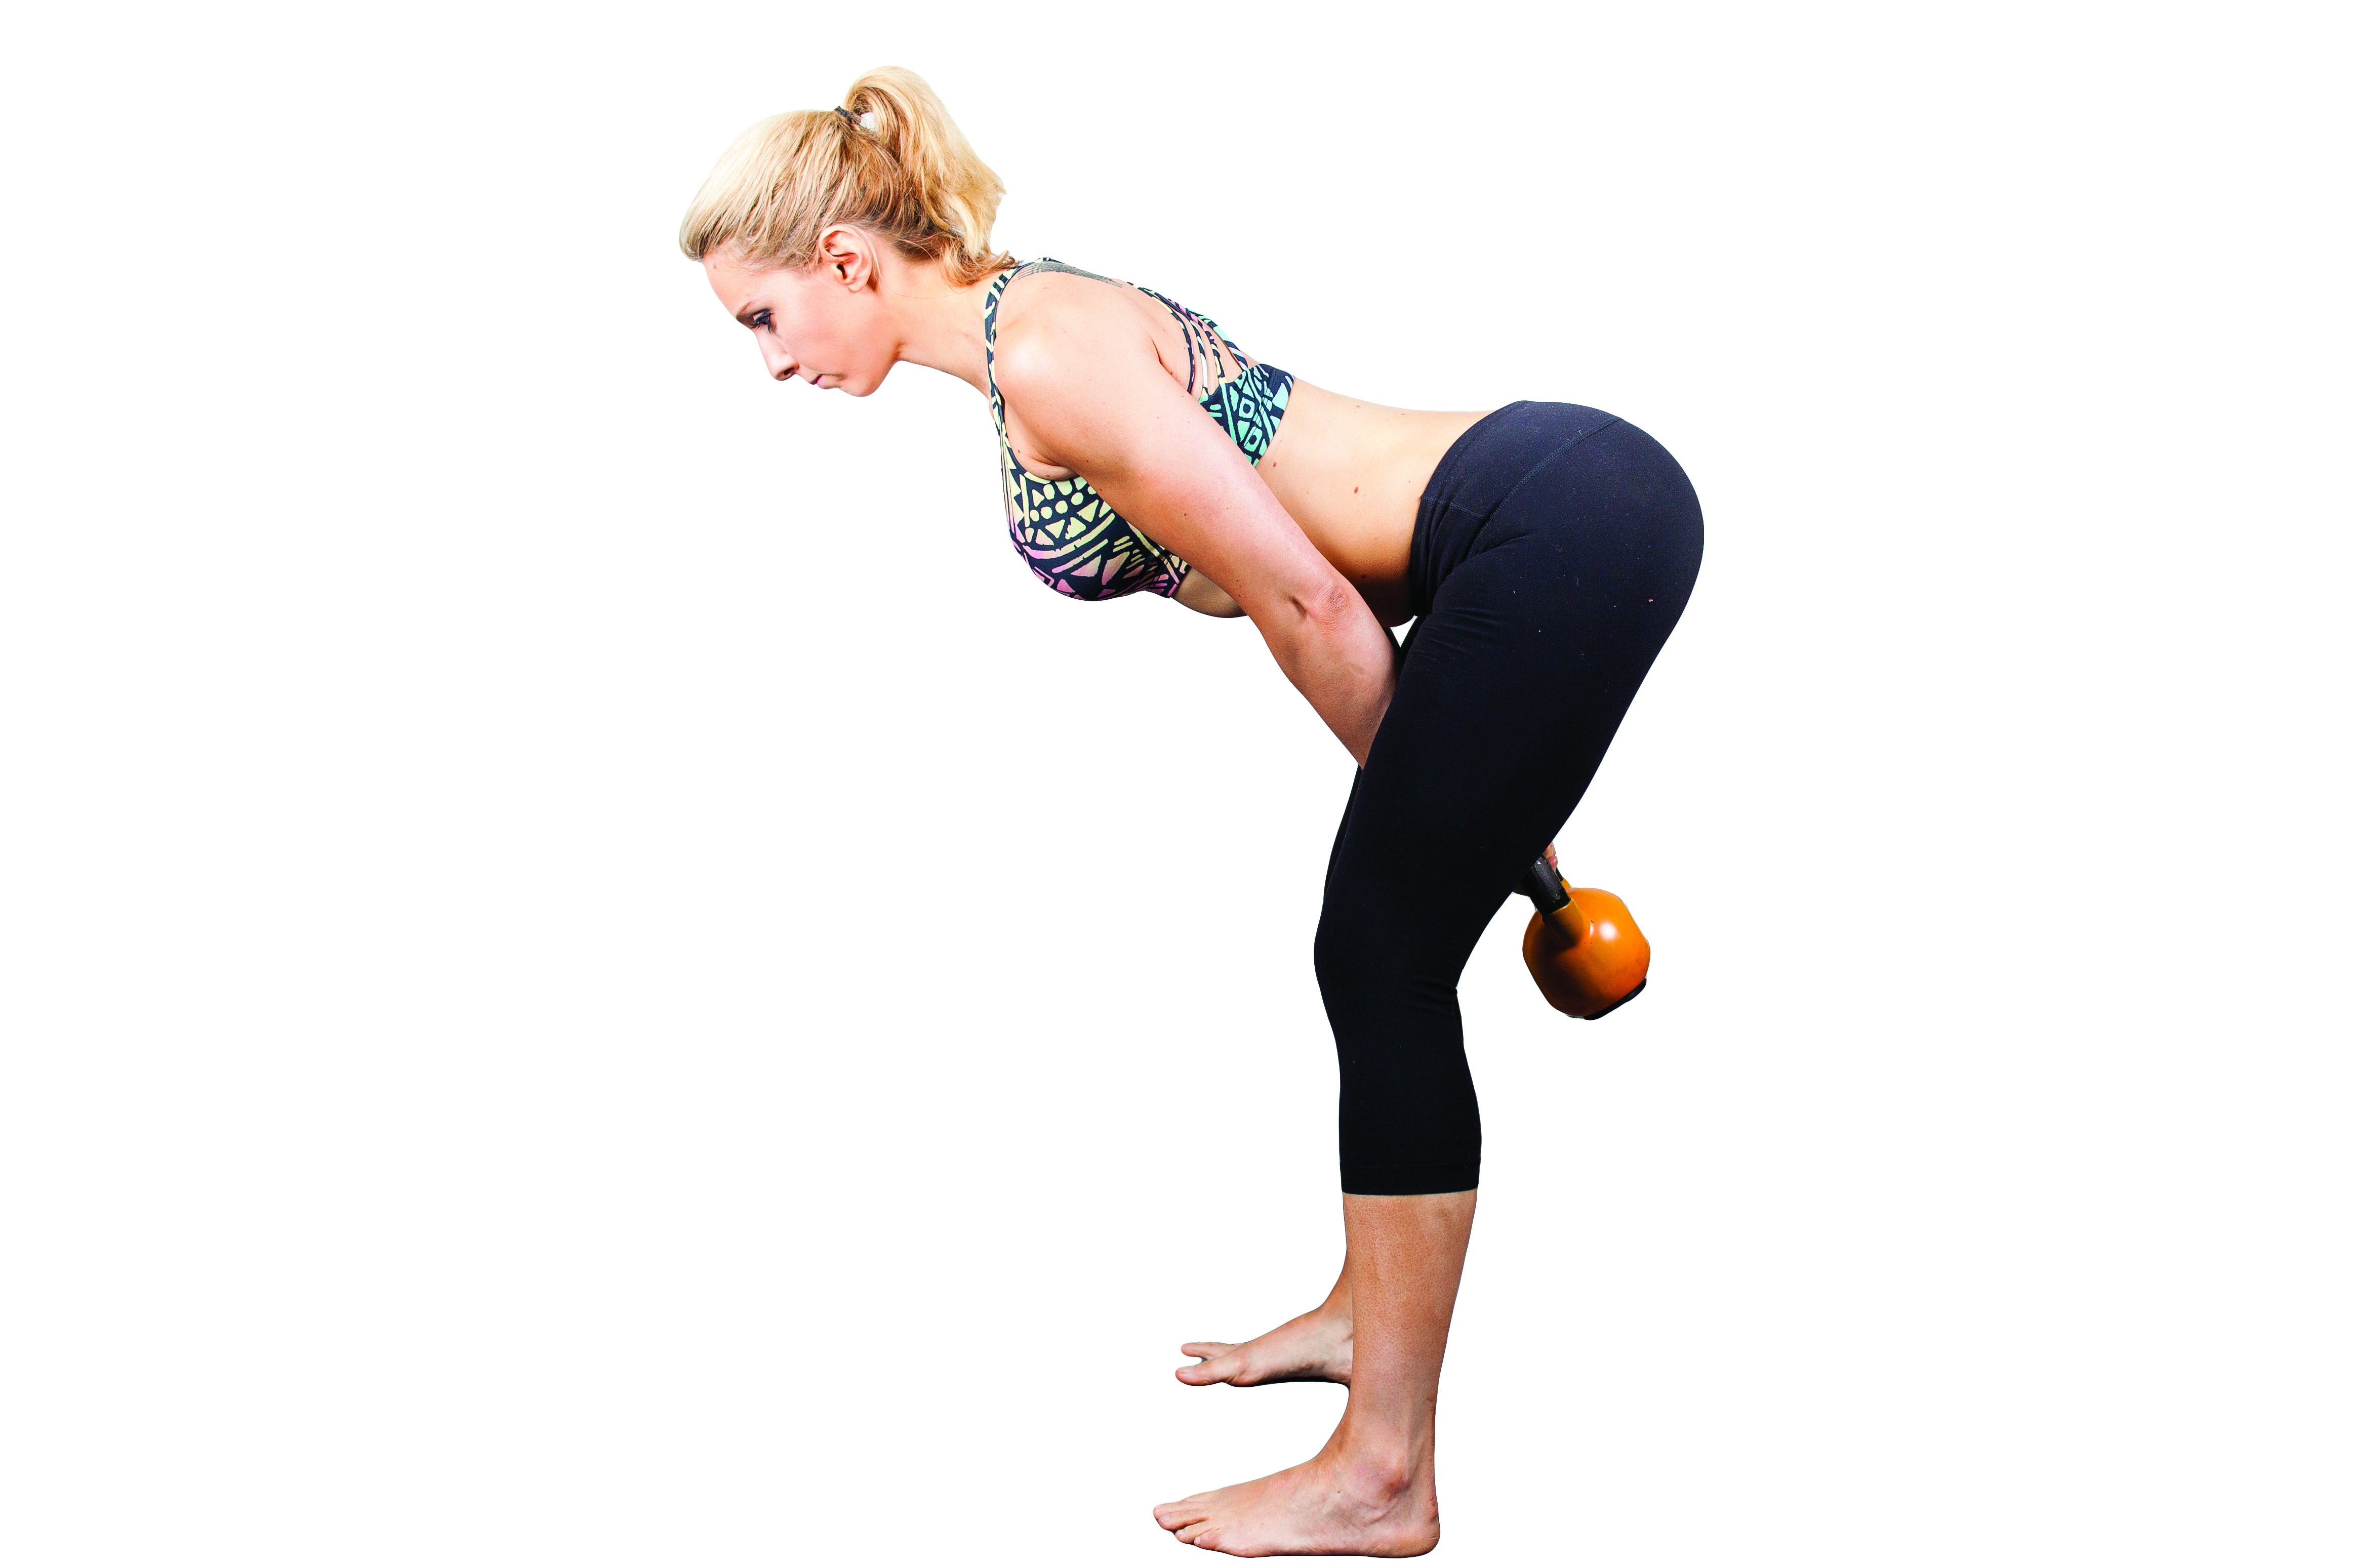 Kettlebell Workout for Beginners and Weight Loss